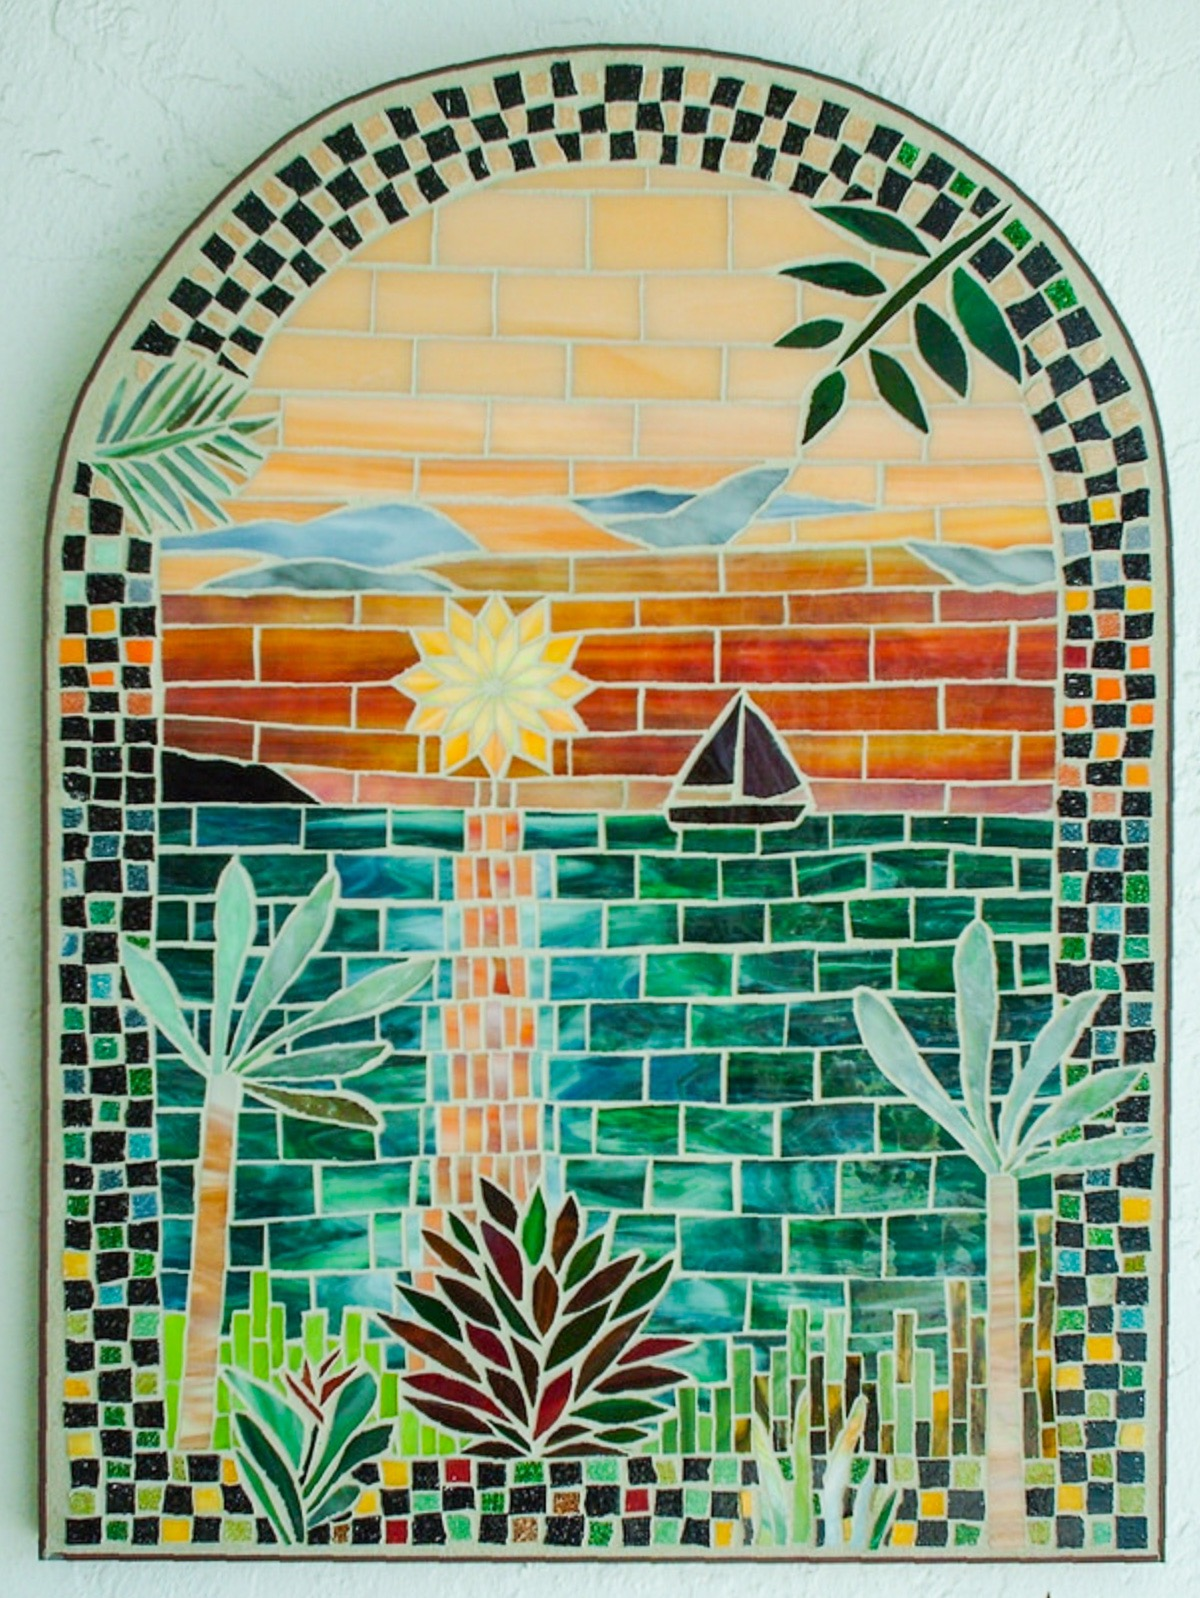 First mosaic art piece on Linda Pieroth Smith's journey